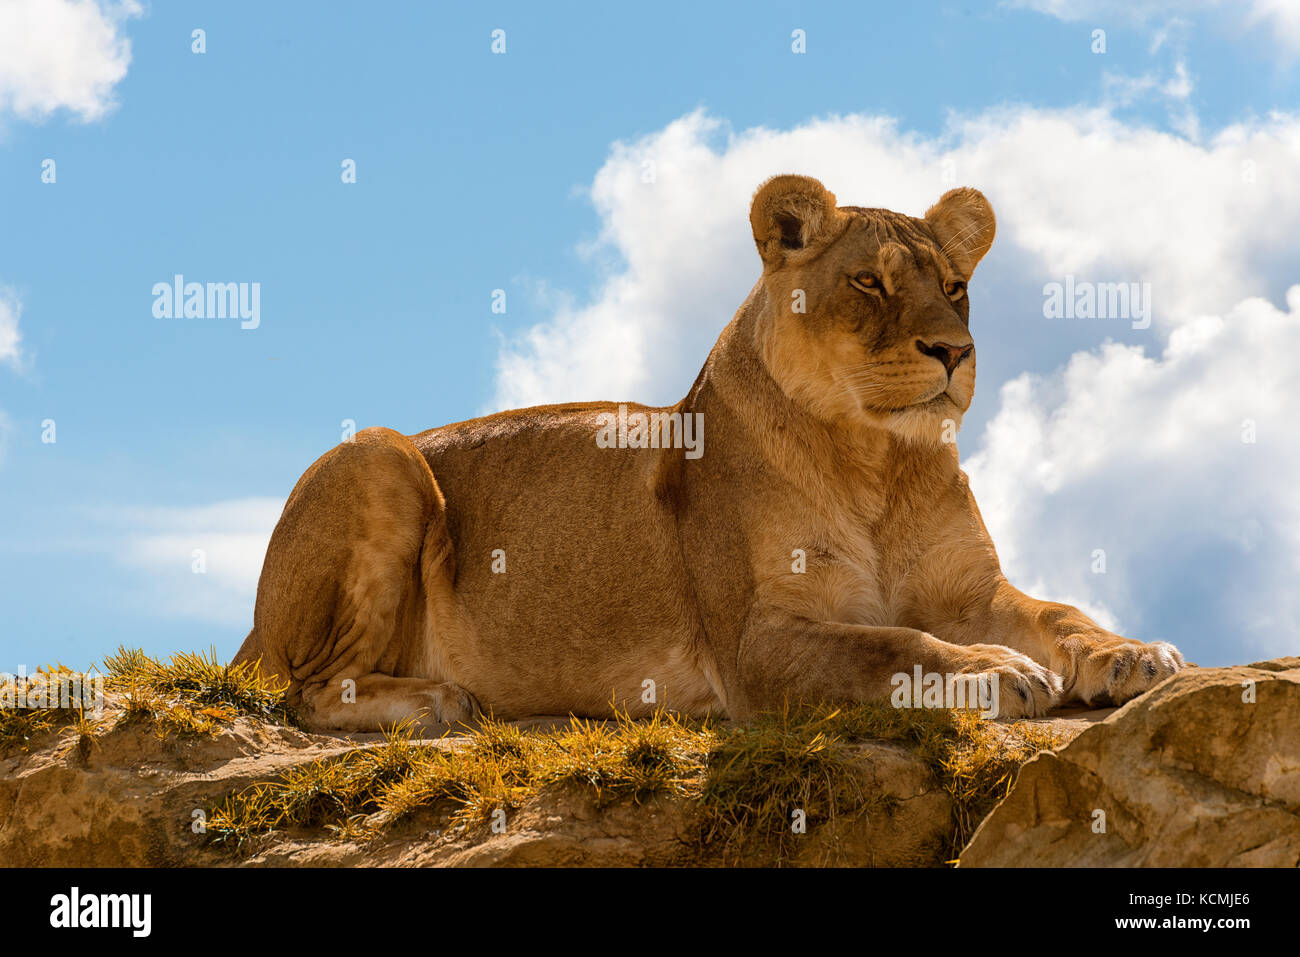 female lion panthera leo standing on the top of a rock on blue cloudy sky background. - Stock Image